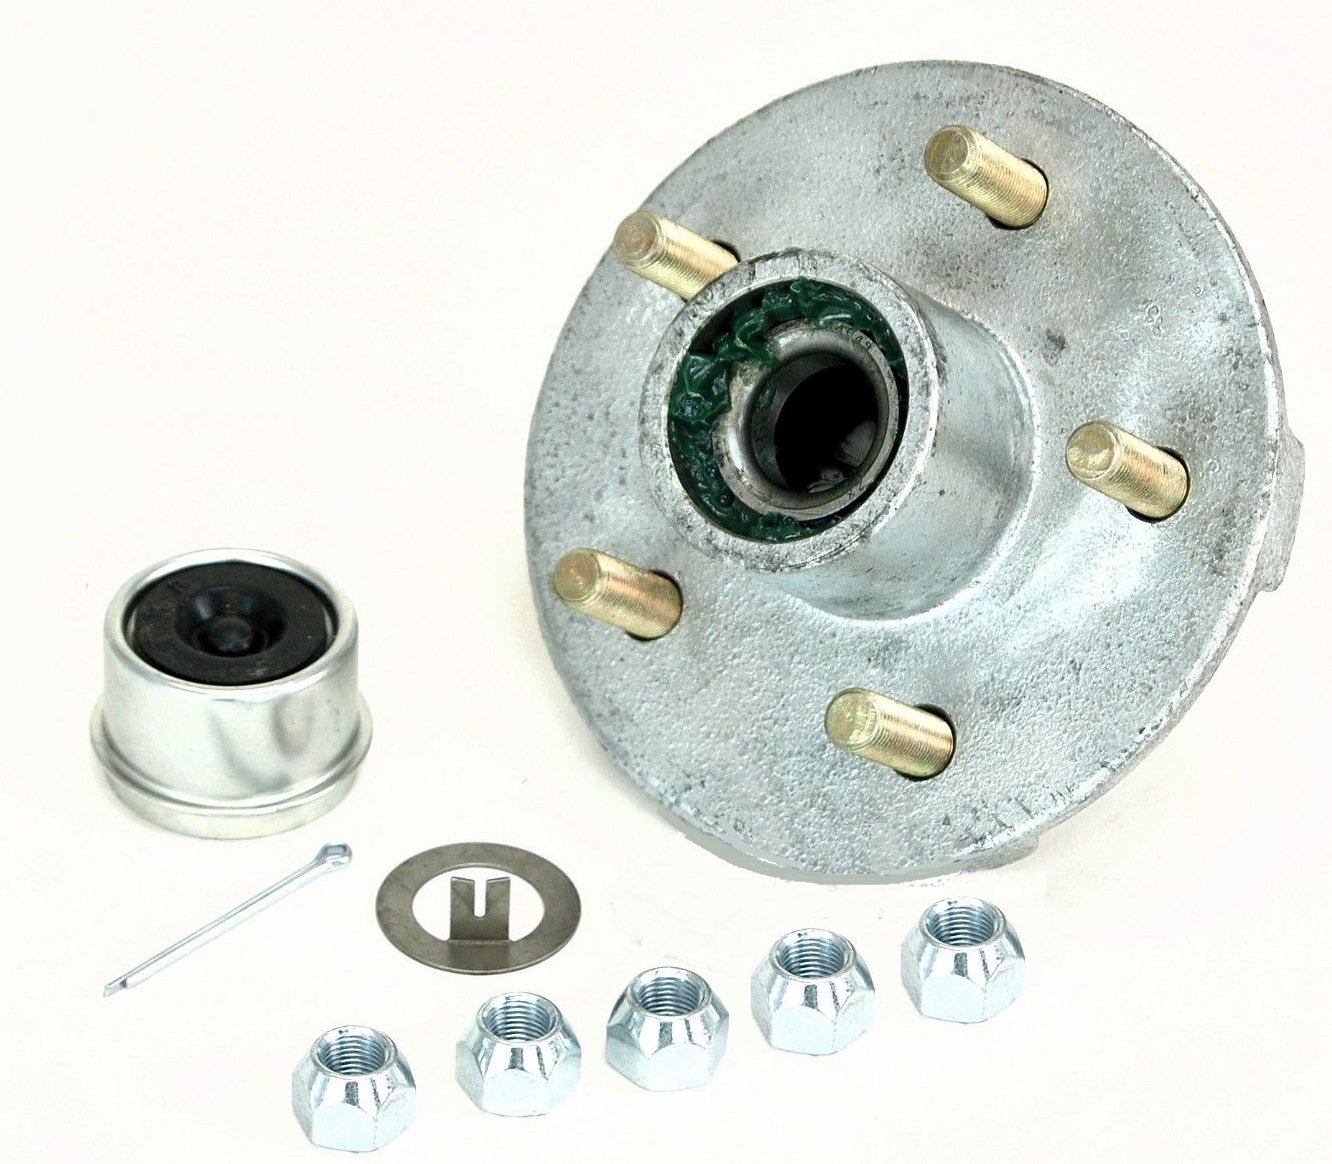 CE Smith Trailer Tapered 1-3/8'' to 1-1/16'' Stud (5 X 4 1/2) Galvanized Trailer Hub Kit by CE Smith